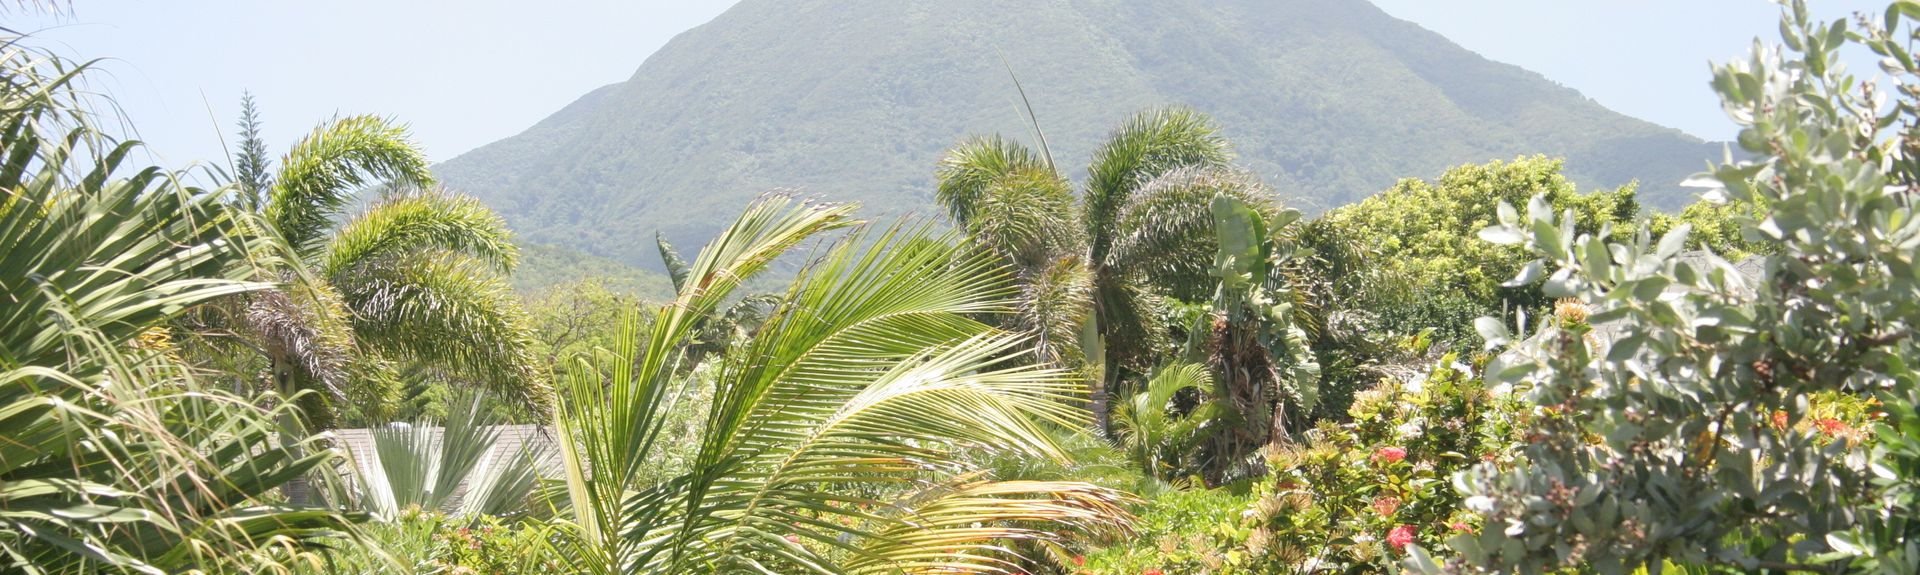 Kittian Village, St Kitts and Nevis